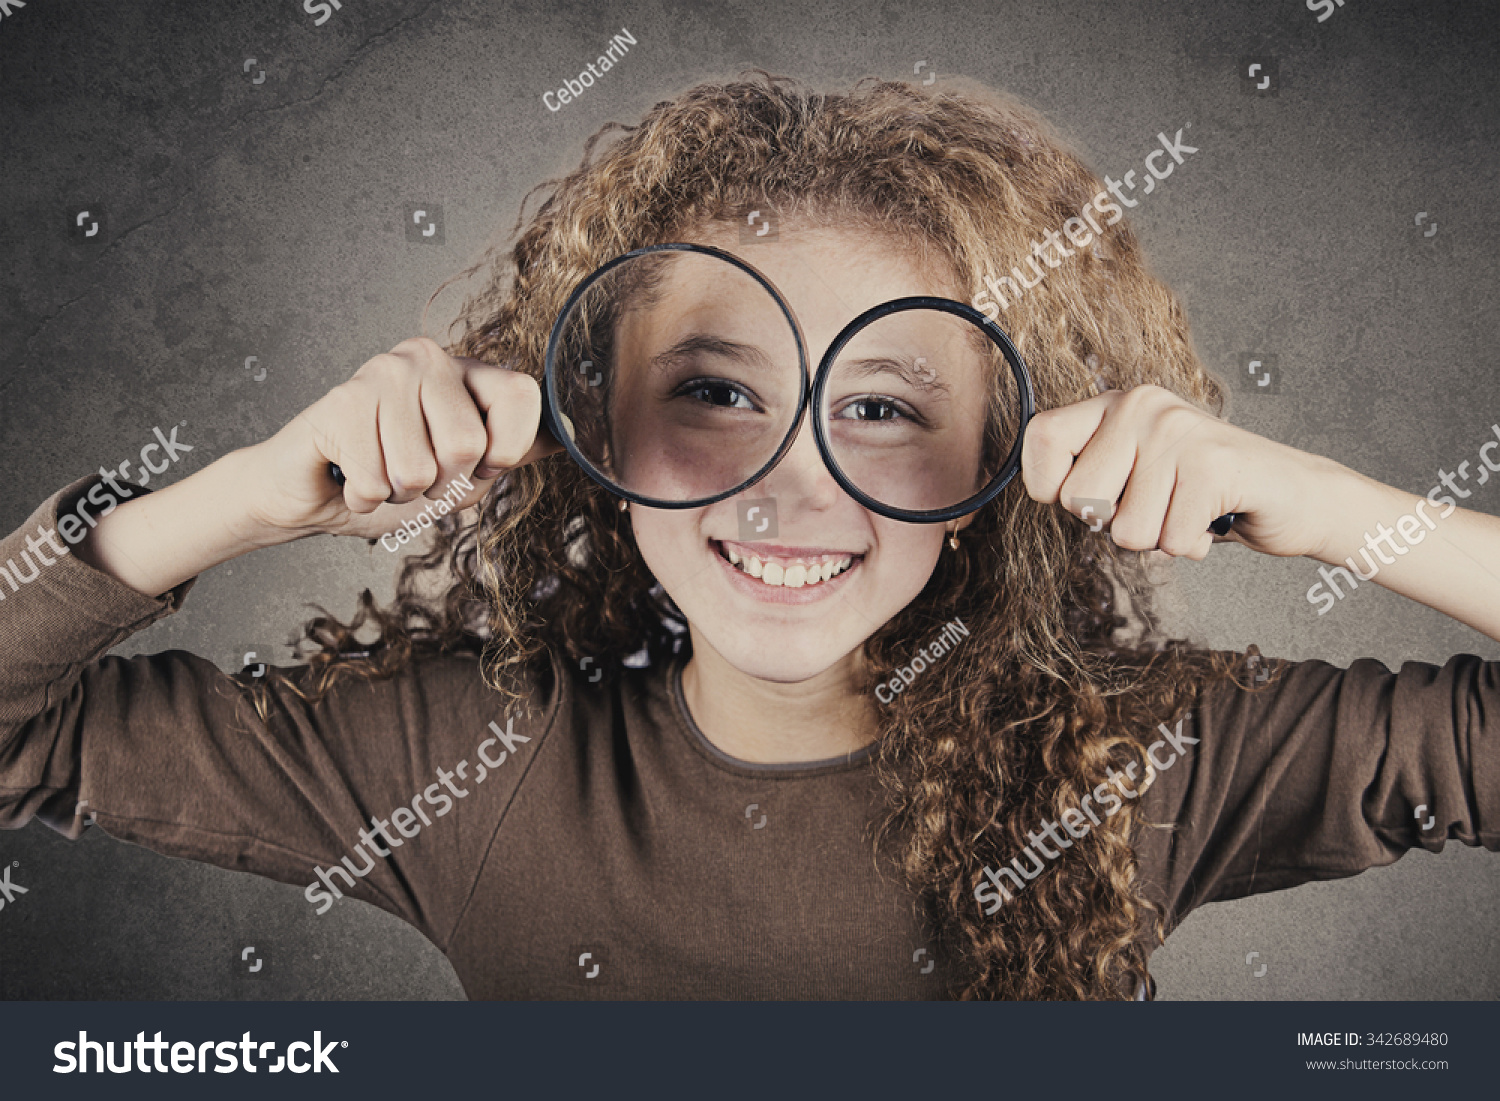 fca8efa606e4 Funny portrait of cute little girl looking through magnifying glass.Curious  Smiling little girl looking